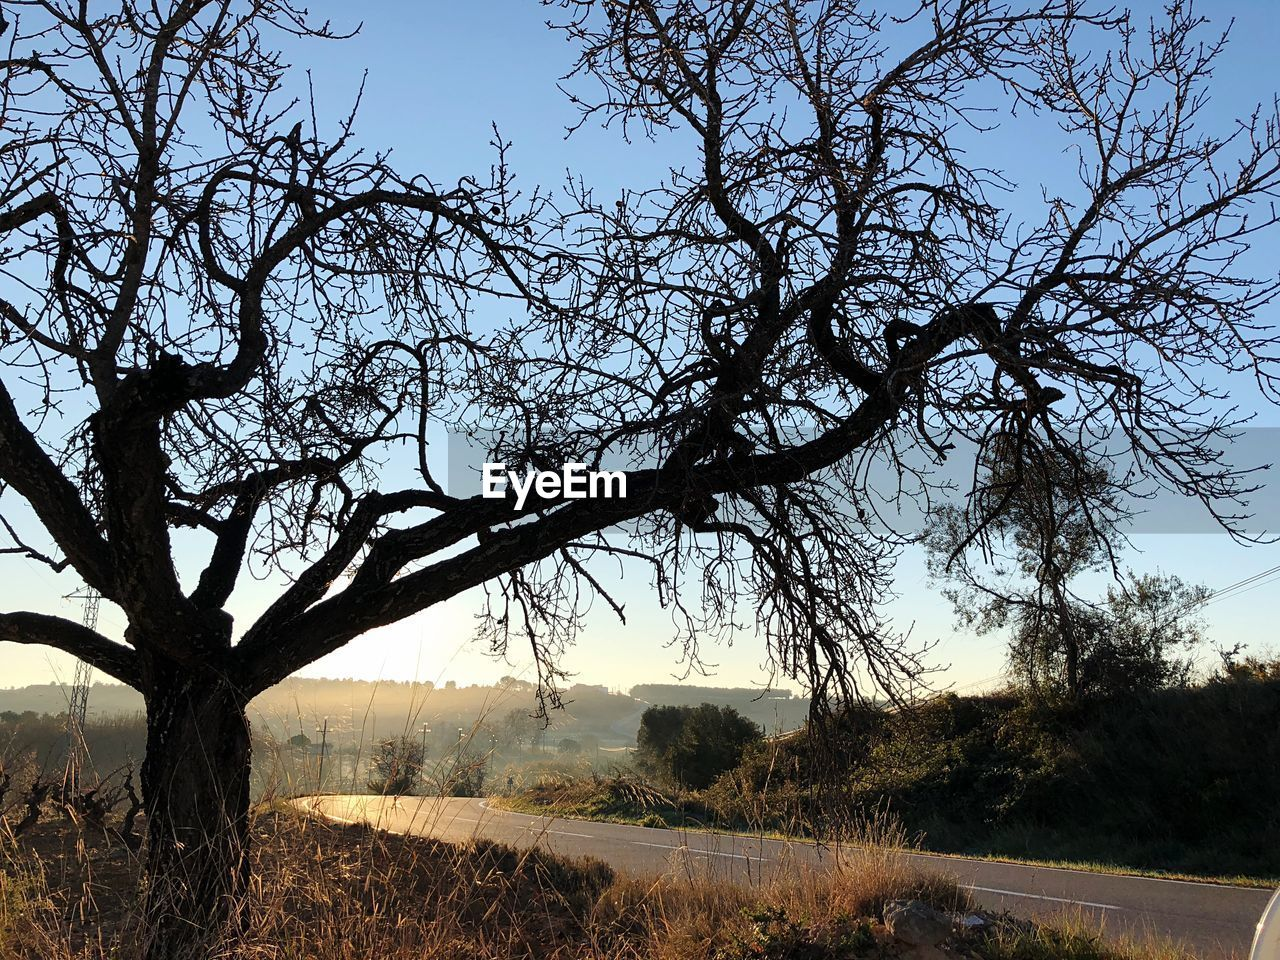 tree, bare tree, landscape, tranquility, nature, tranquil scene, beauty in nature, field, scenics, branch, outdoors, no people, sky, day, lone, clear sky